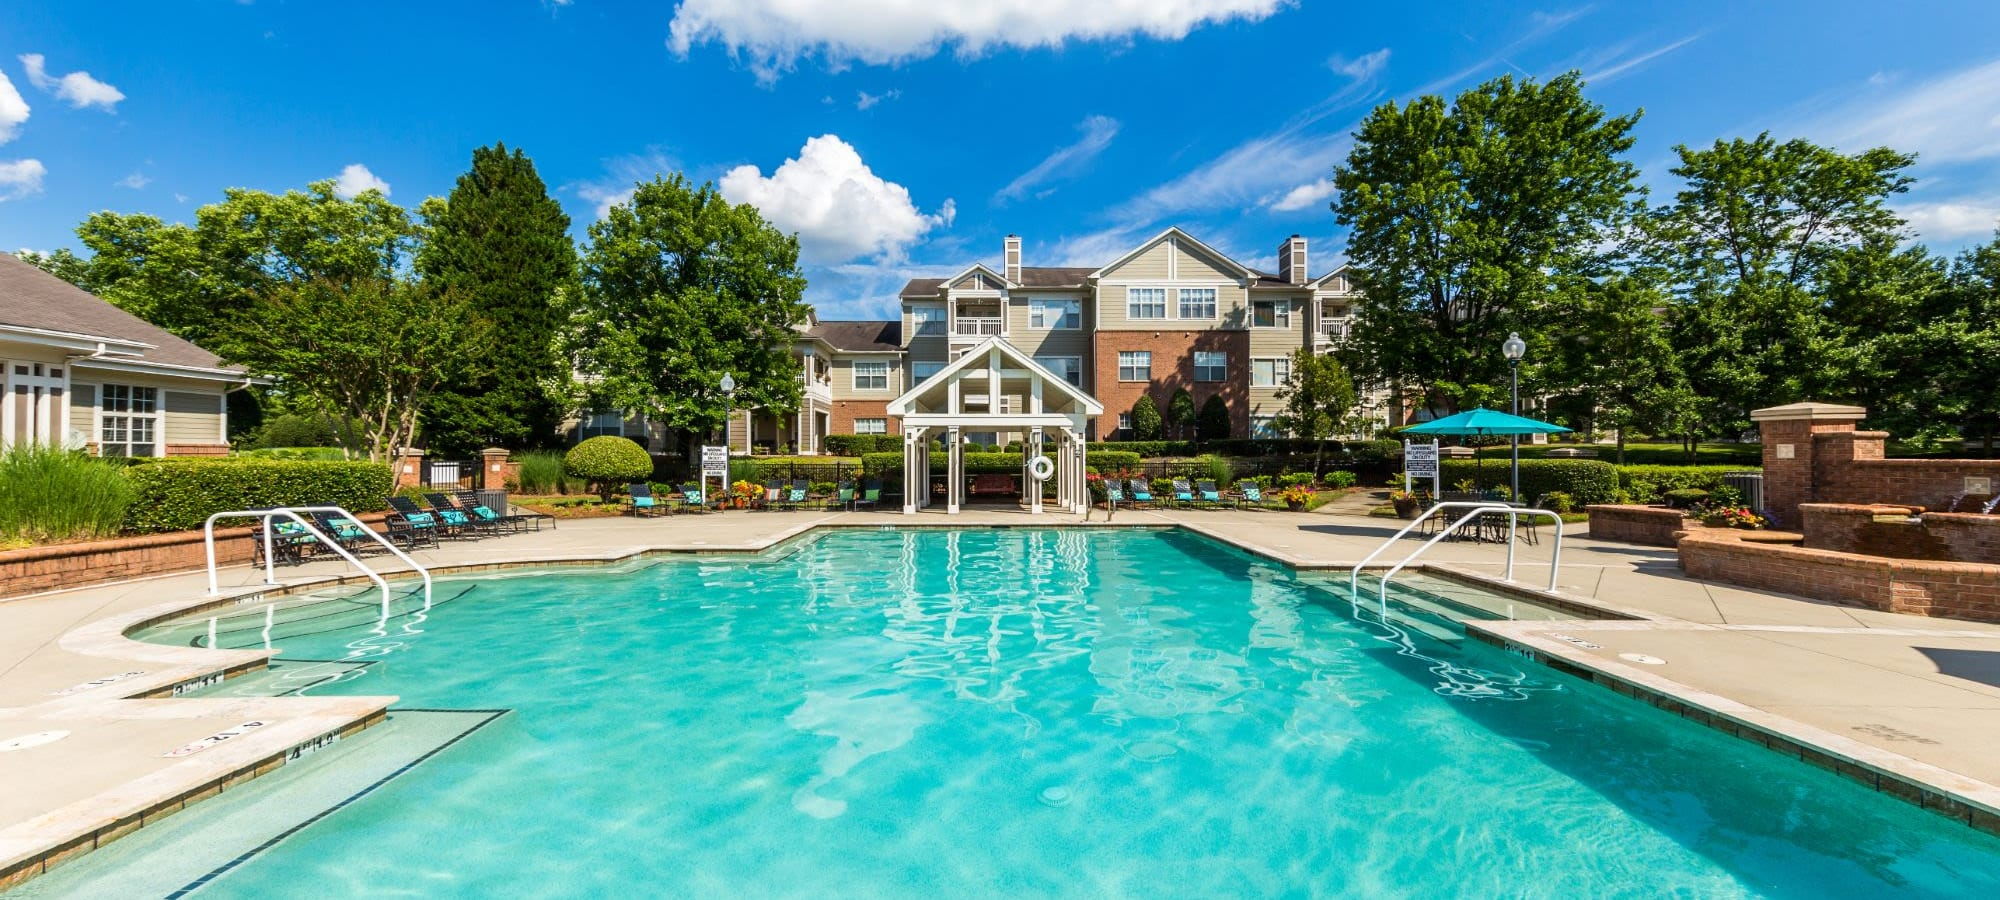 Amenities at The Preserve at Ballantyne Commons in Charlotte, North Carolina